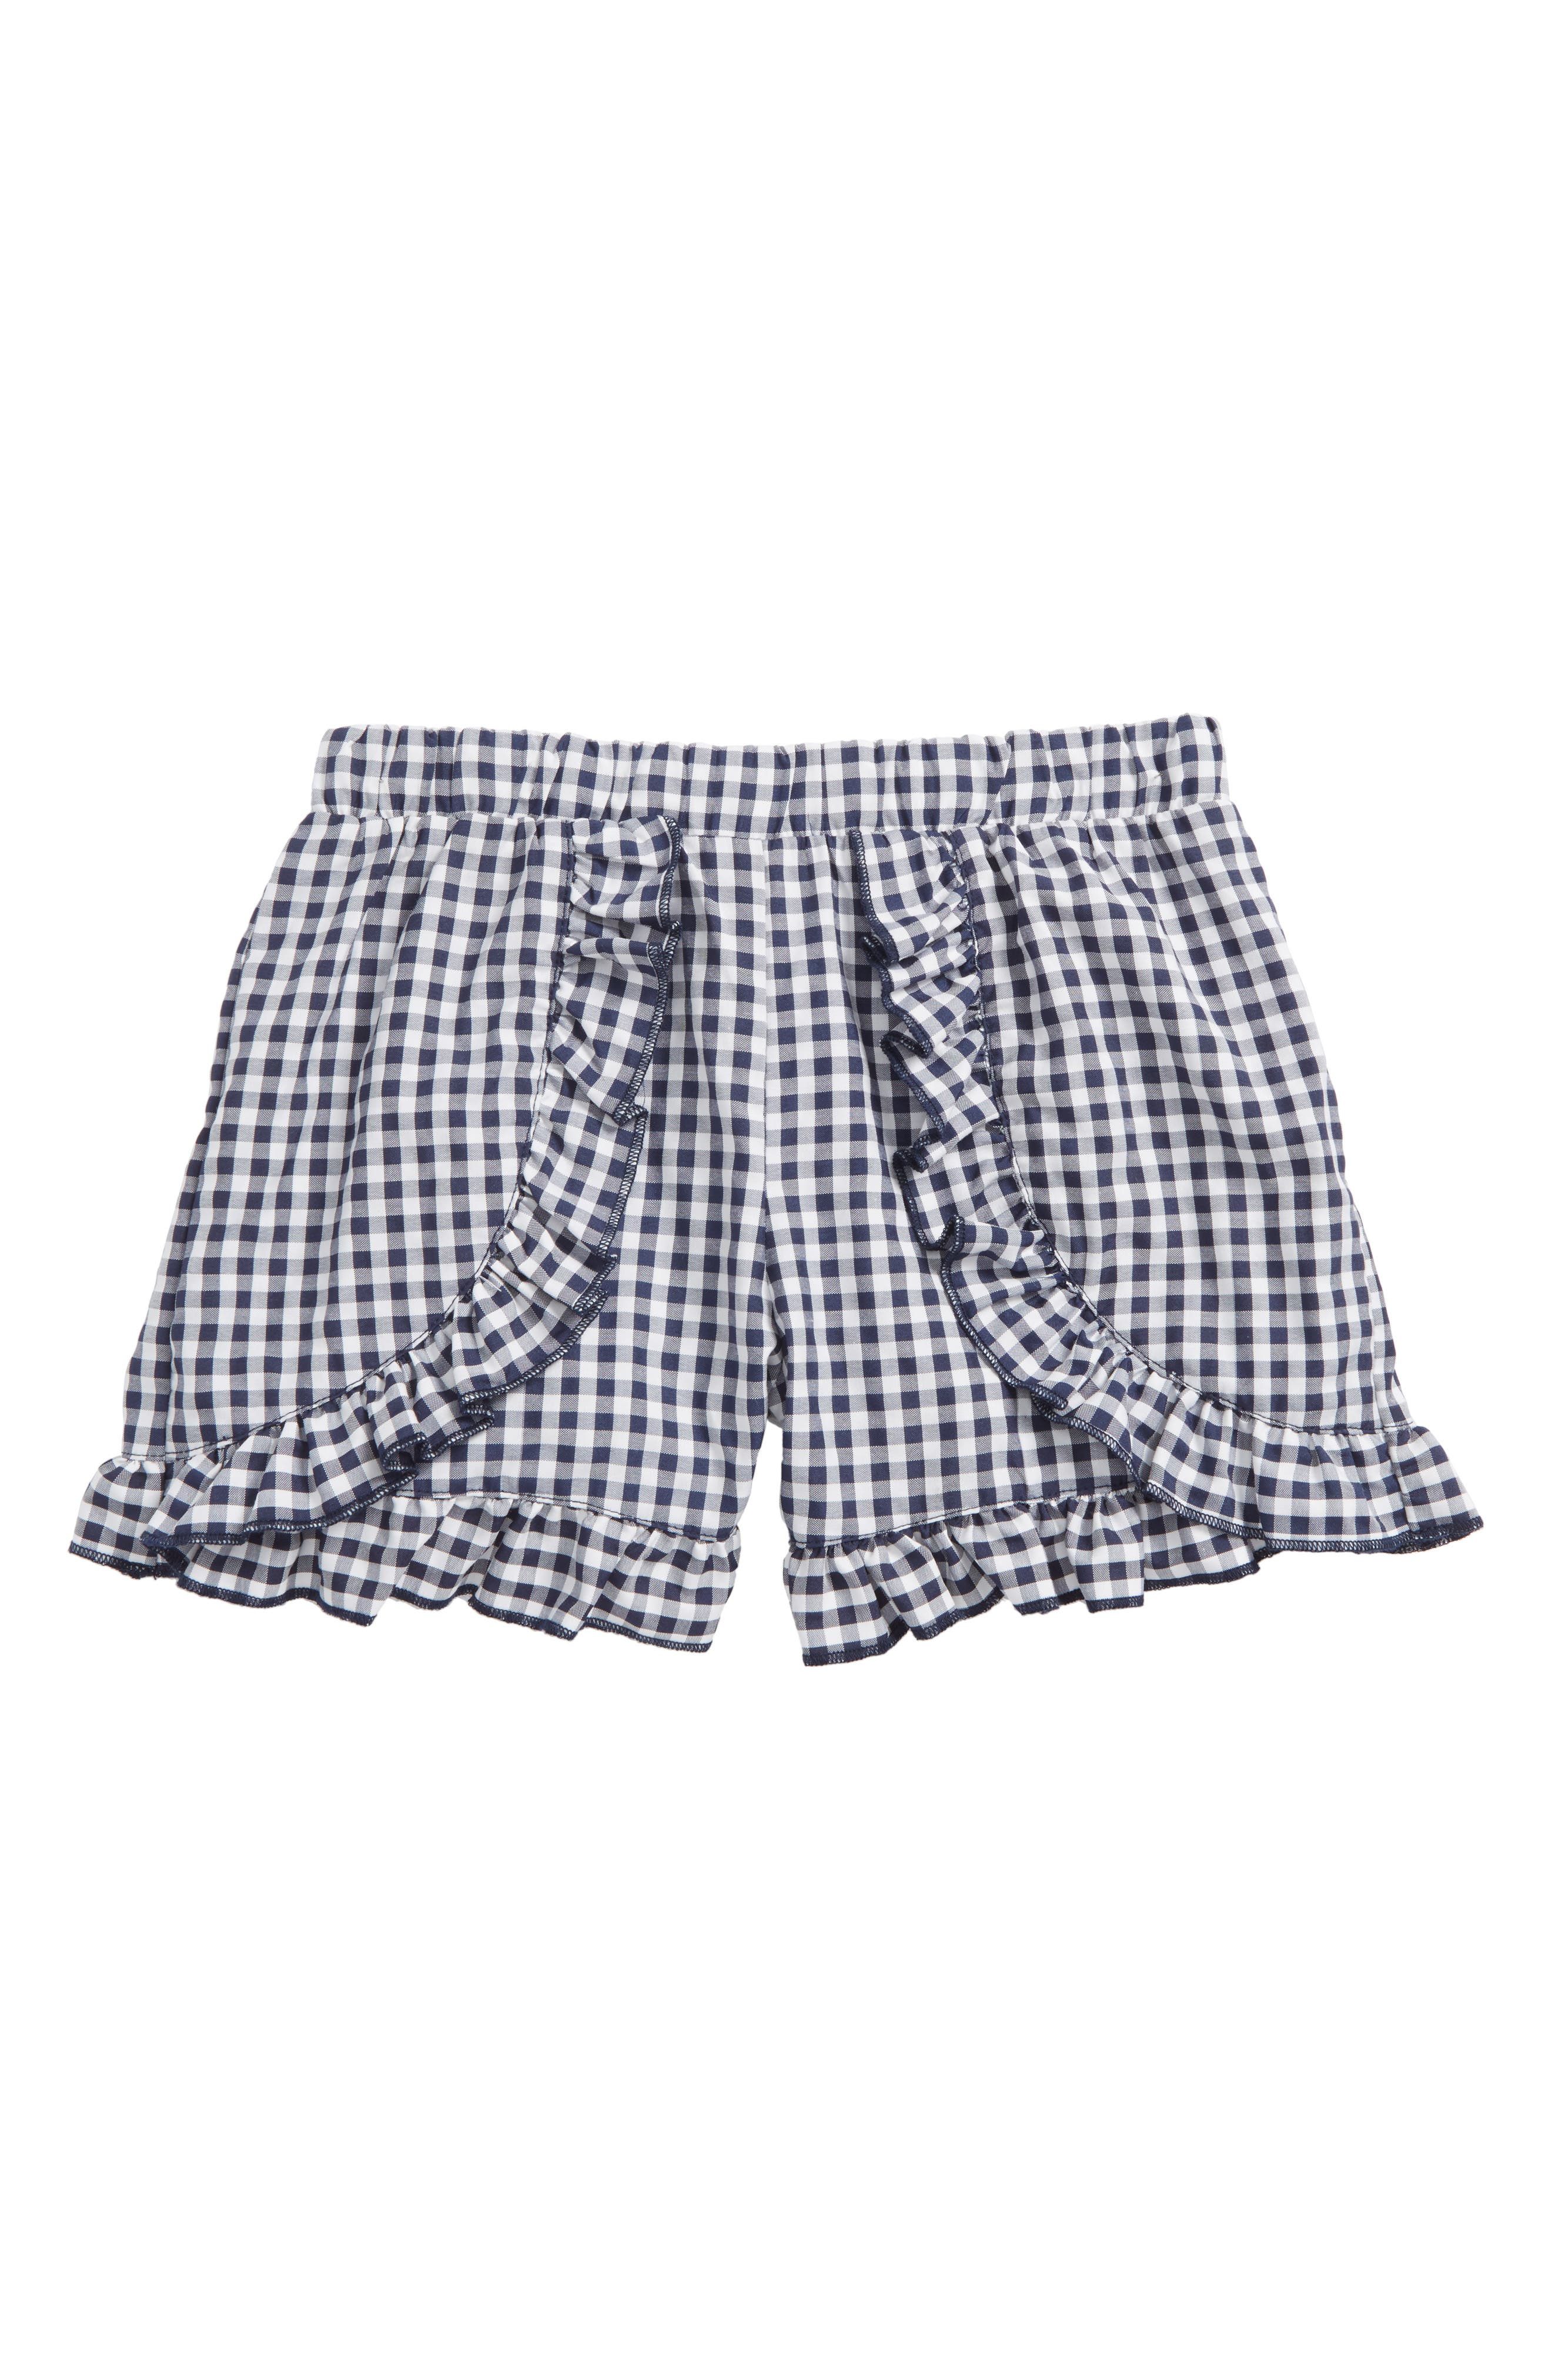 Ruffle Gingham Shorts,                             Main thumbnail 1, color,                             417